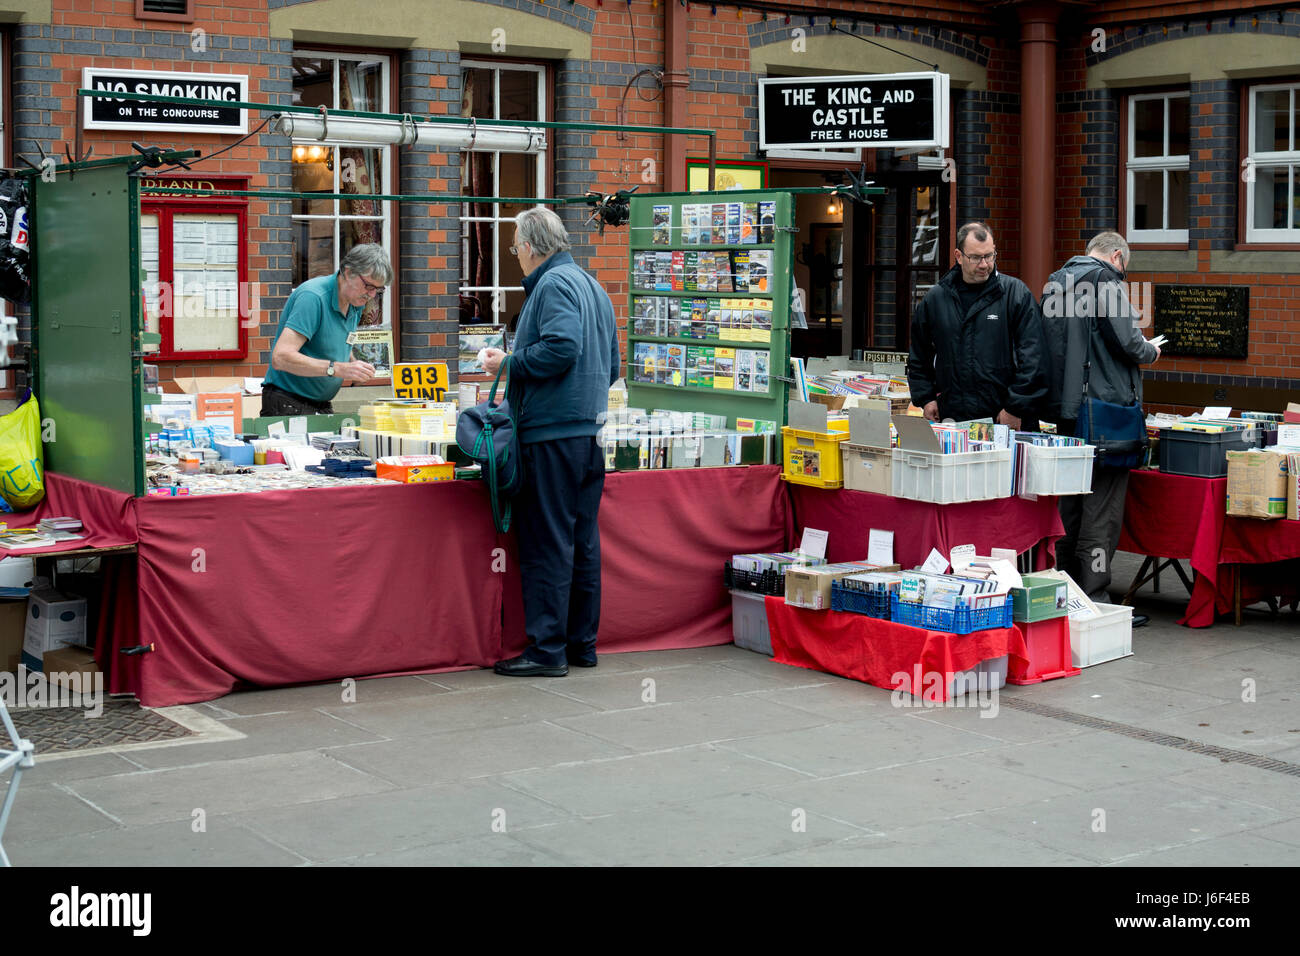 Rail enthusiast stalls at the Severn Valley Railway, Kidderminster station, UK - Stock Image